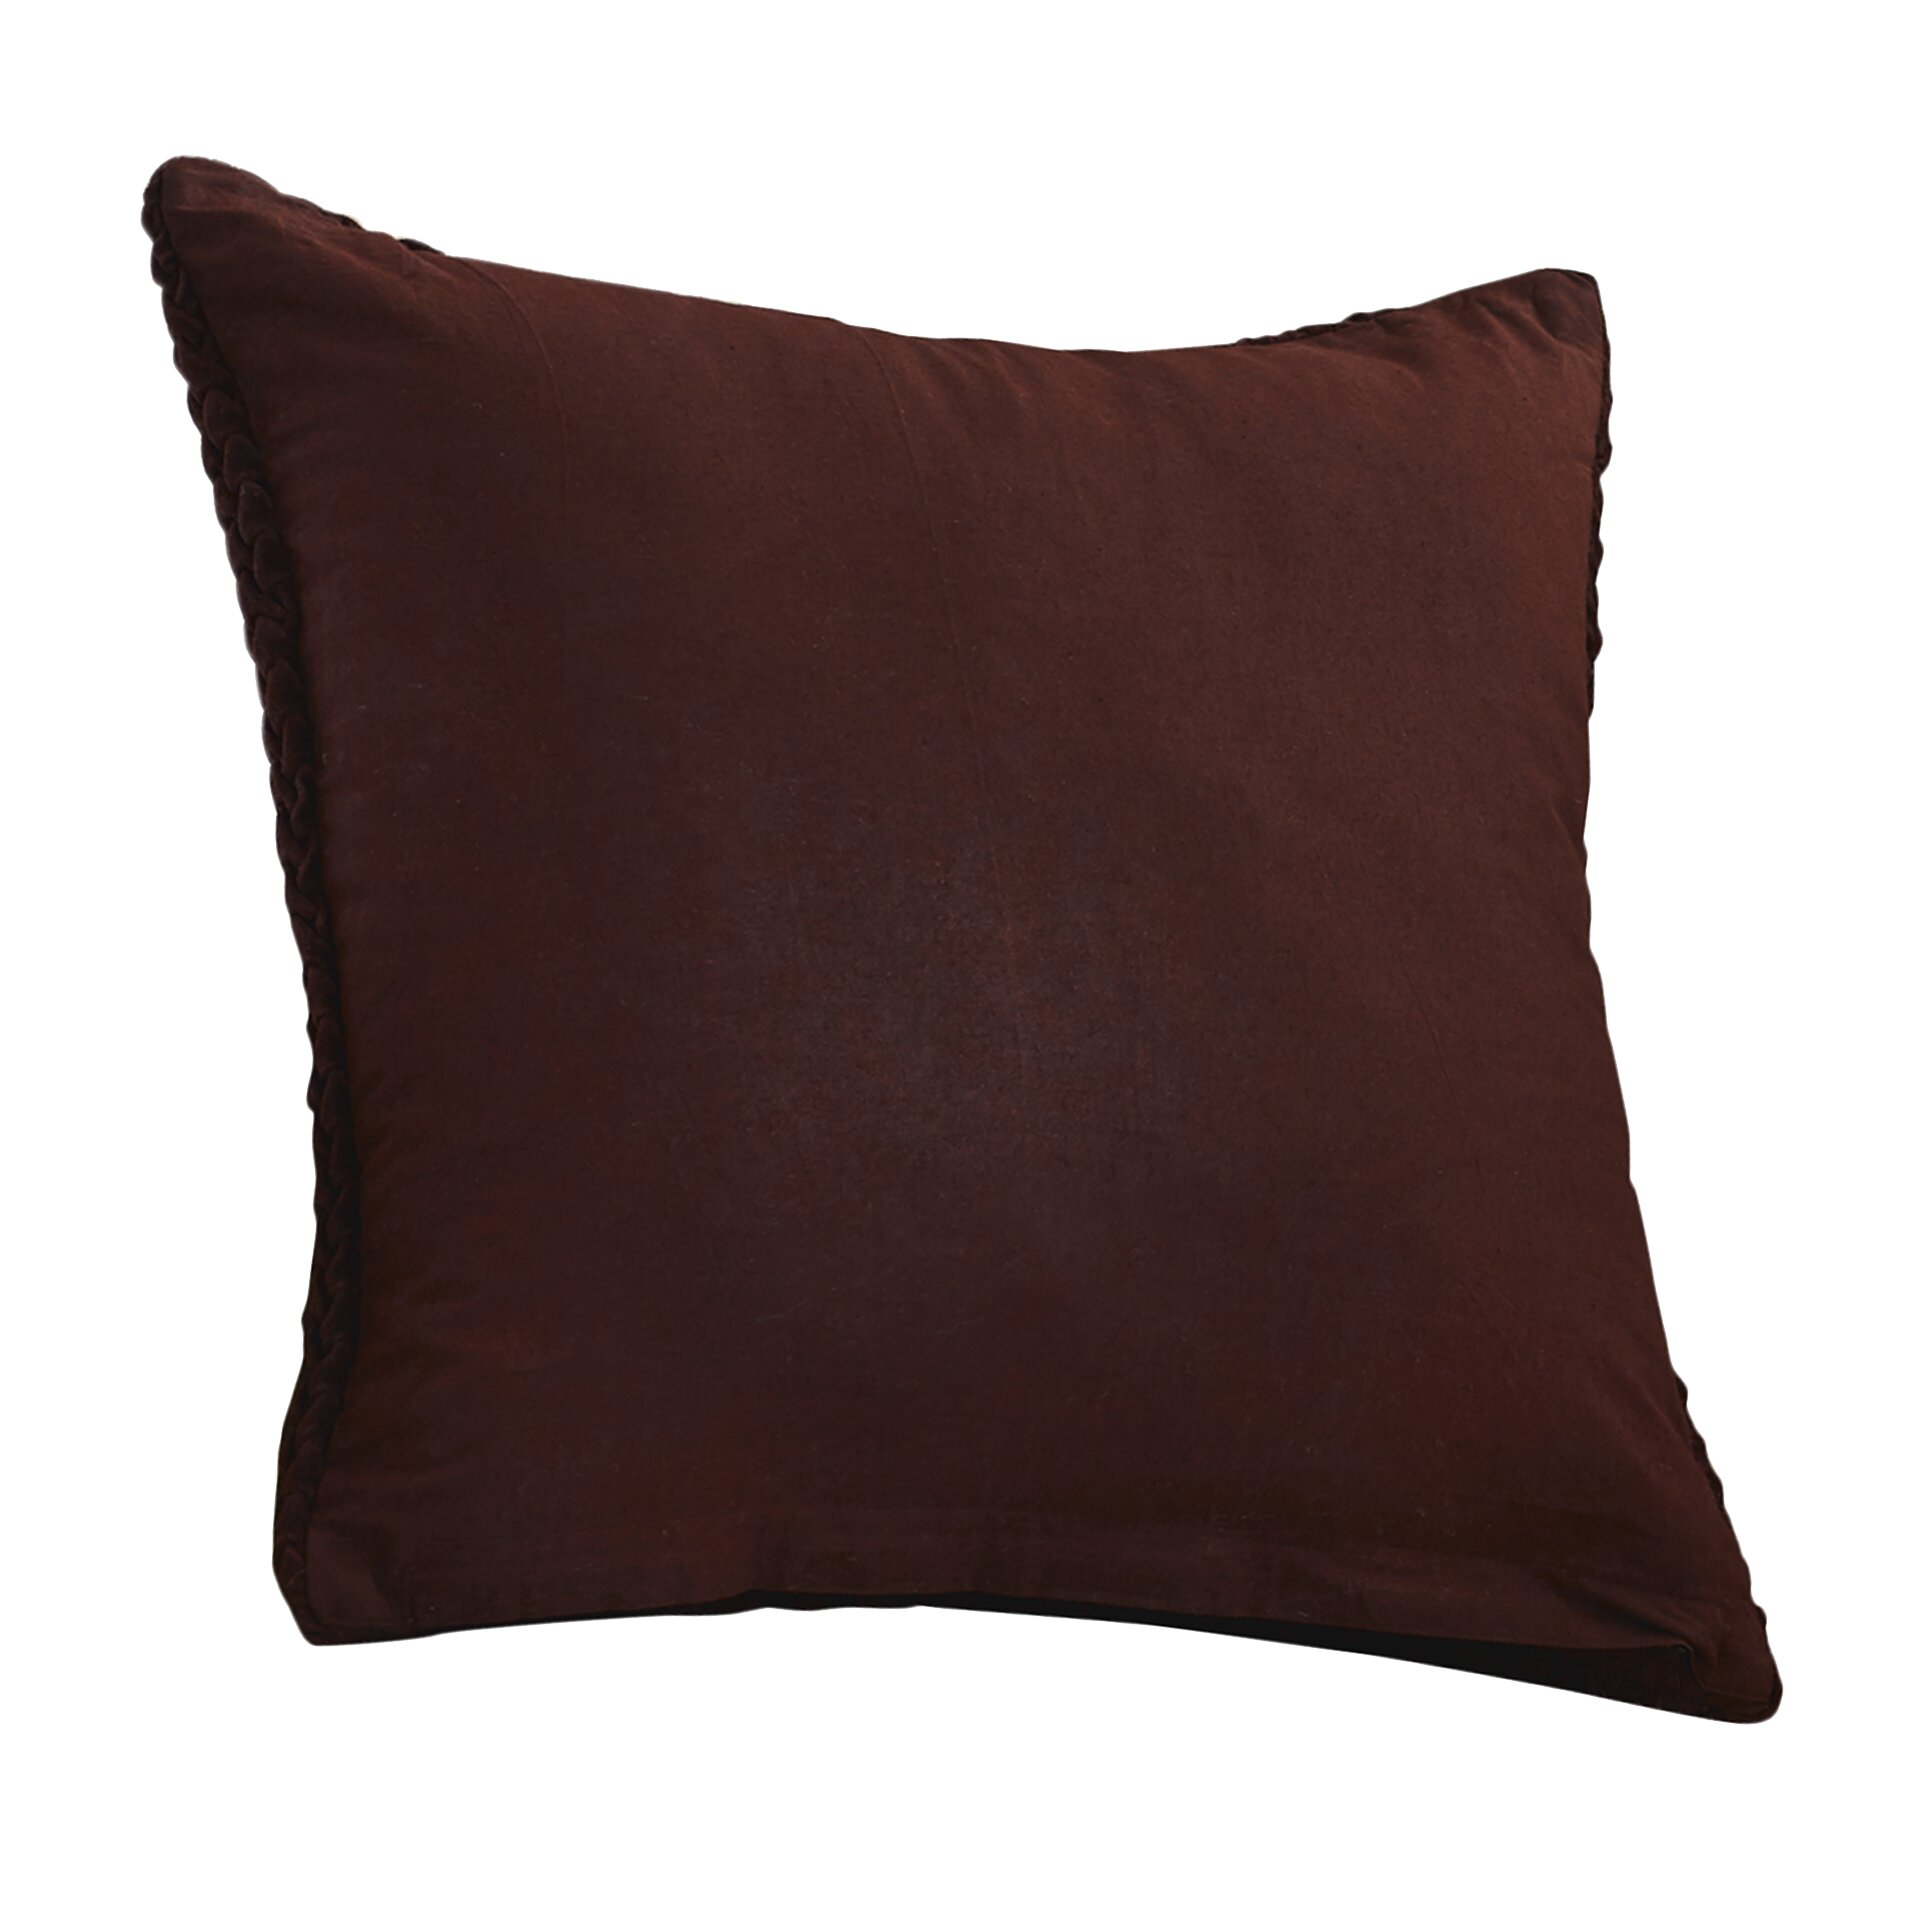 Throw Pillows Textured : Wade Logan Stoney Littleton Textured Triangles Cotton Throw Pillow & Reviews Wayfair